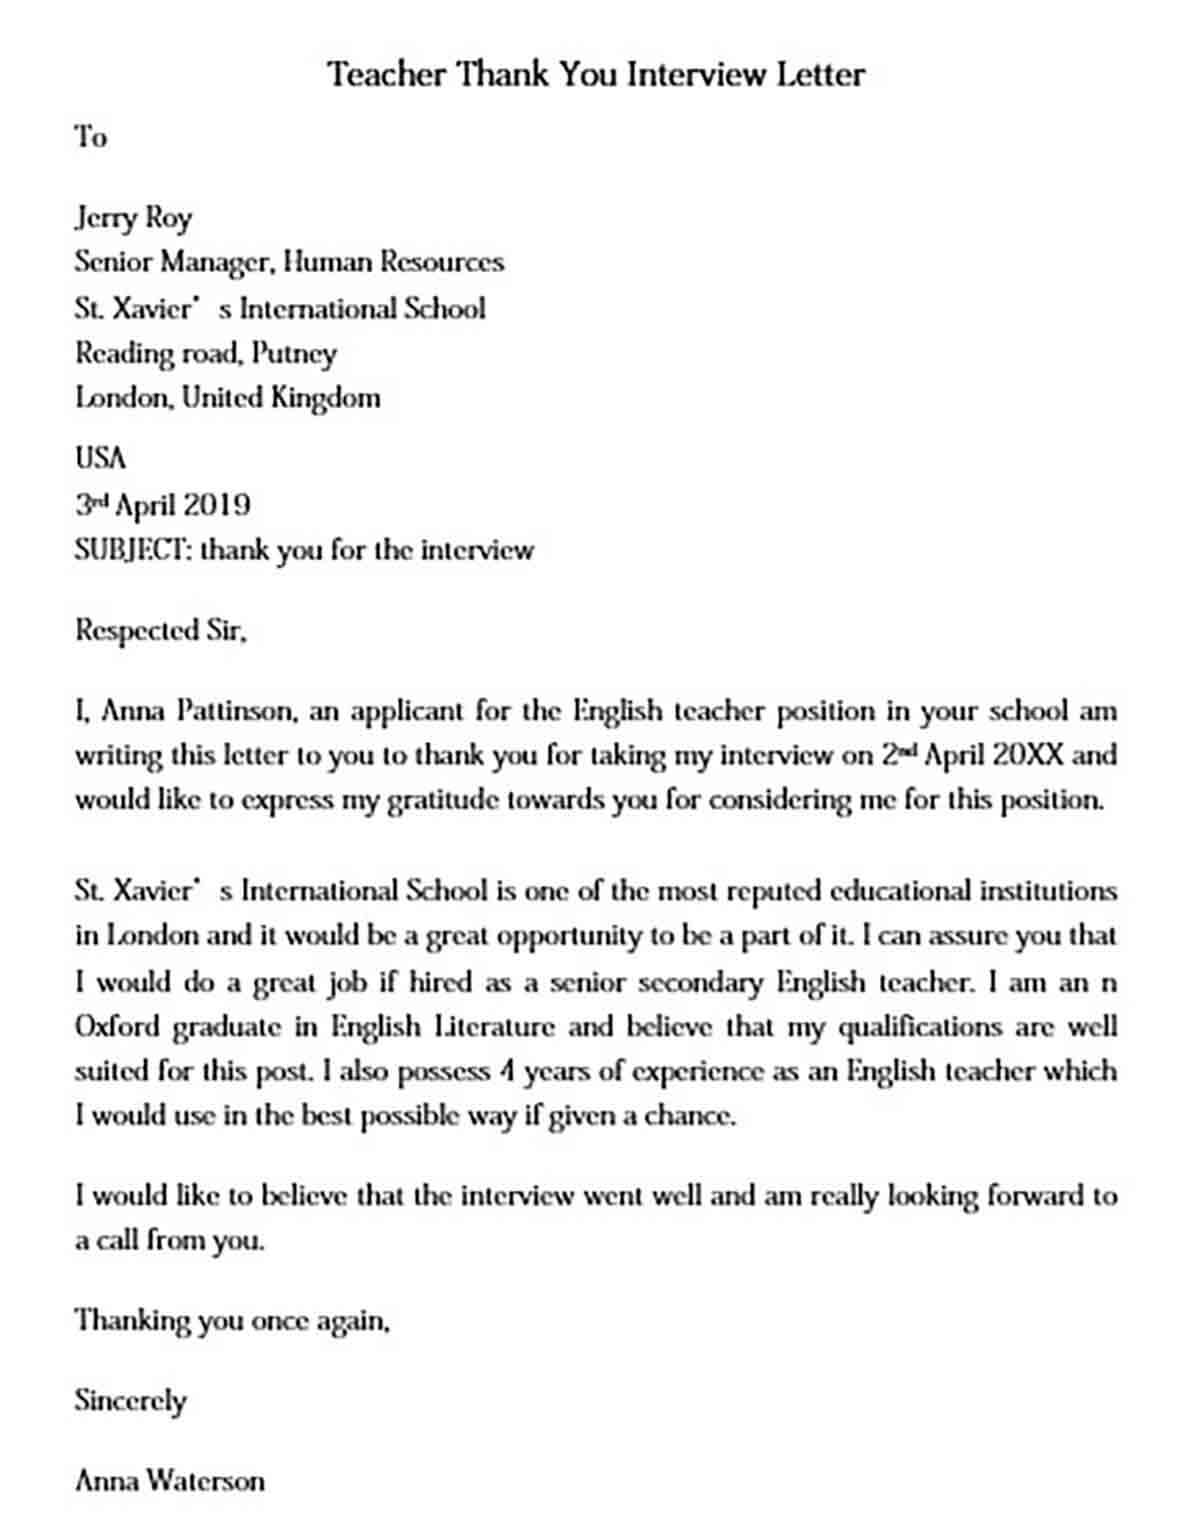 Thank You Interview Letter to Teacher